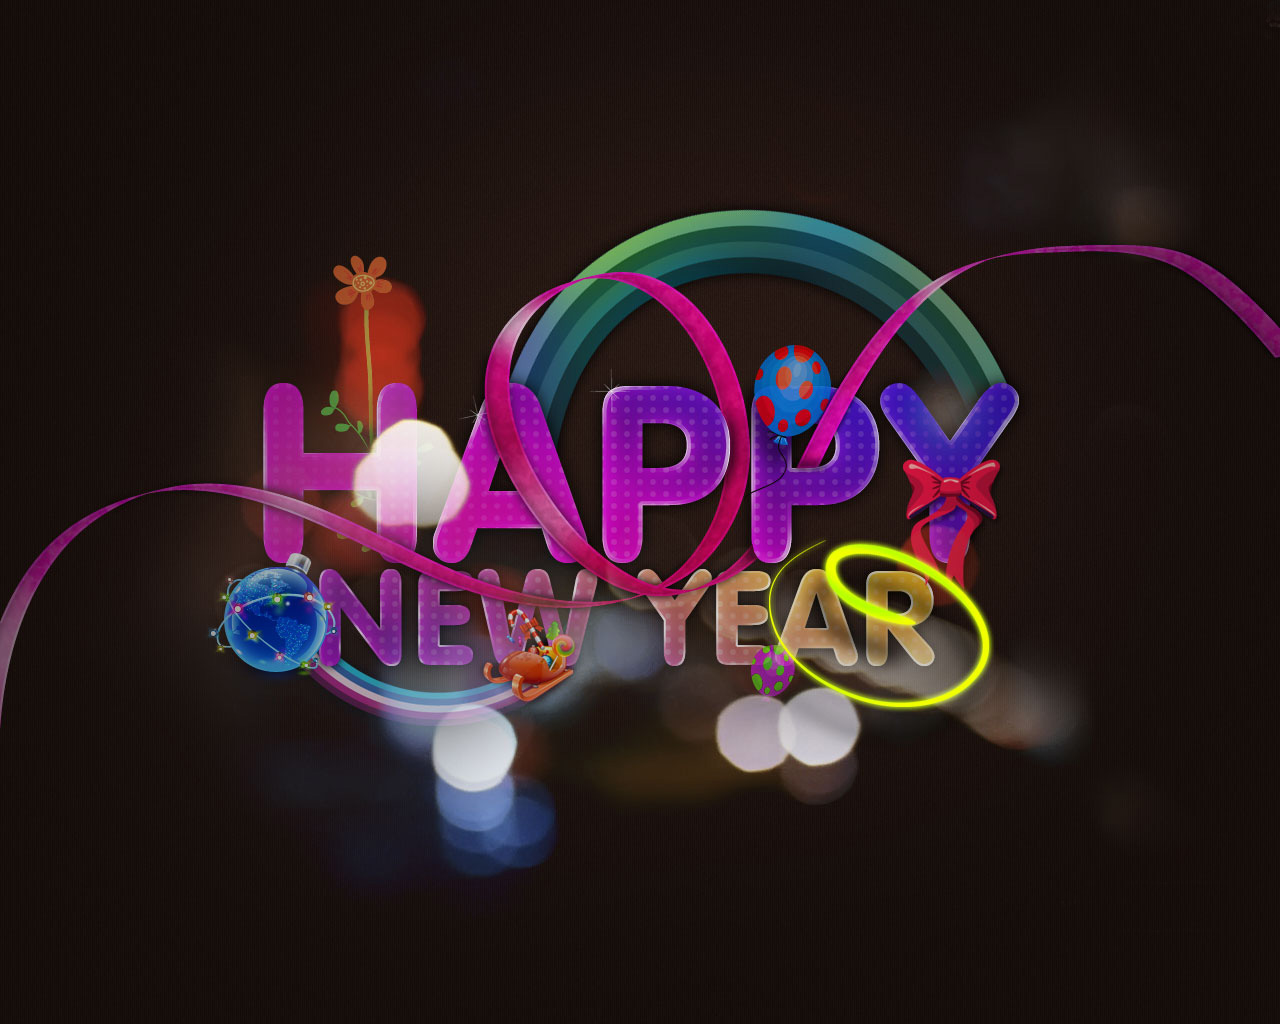 Hd New Year 2017 Images Quotes Square